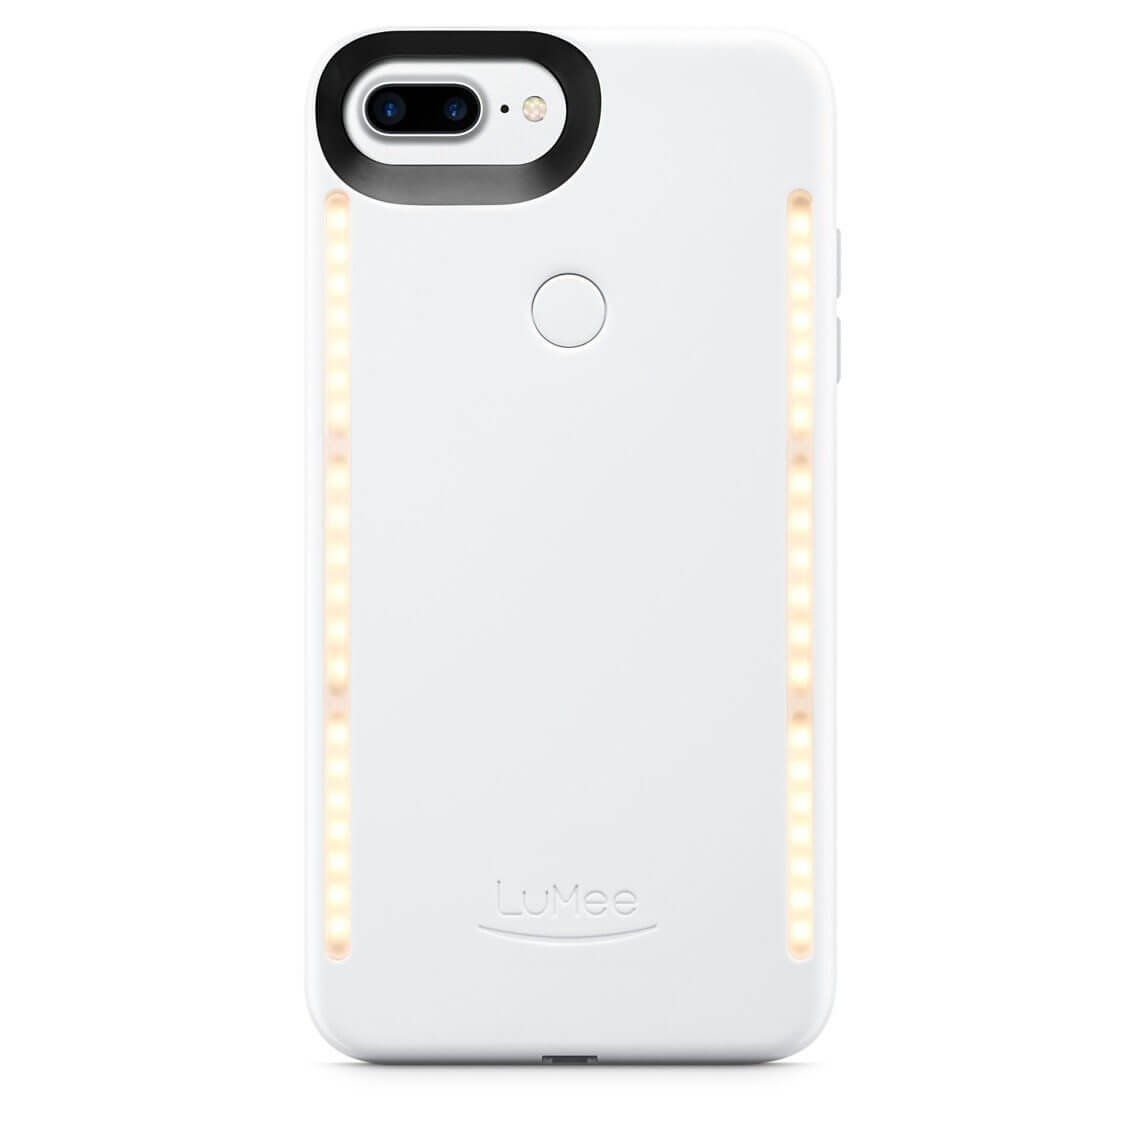 Duo Dimmer Led Lumee Duo Led Iphone 7 Plus In Nigeria Buy Iphone 7 Plus